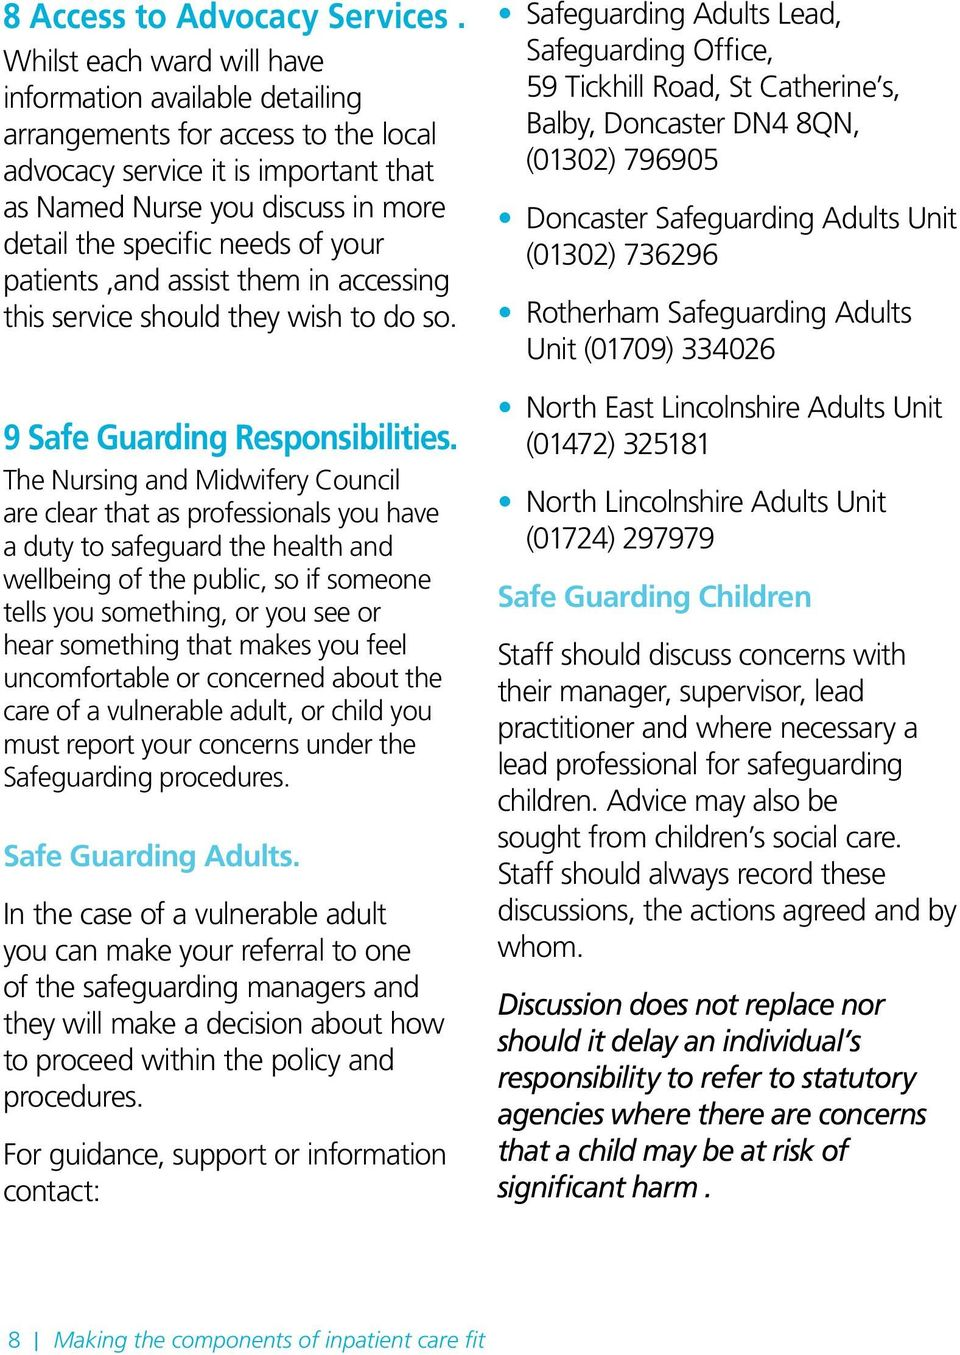 your patients,and assist them in accessing this service should they wish to do so. 9 Safe Guarding Responsibilities.